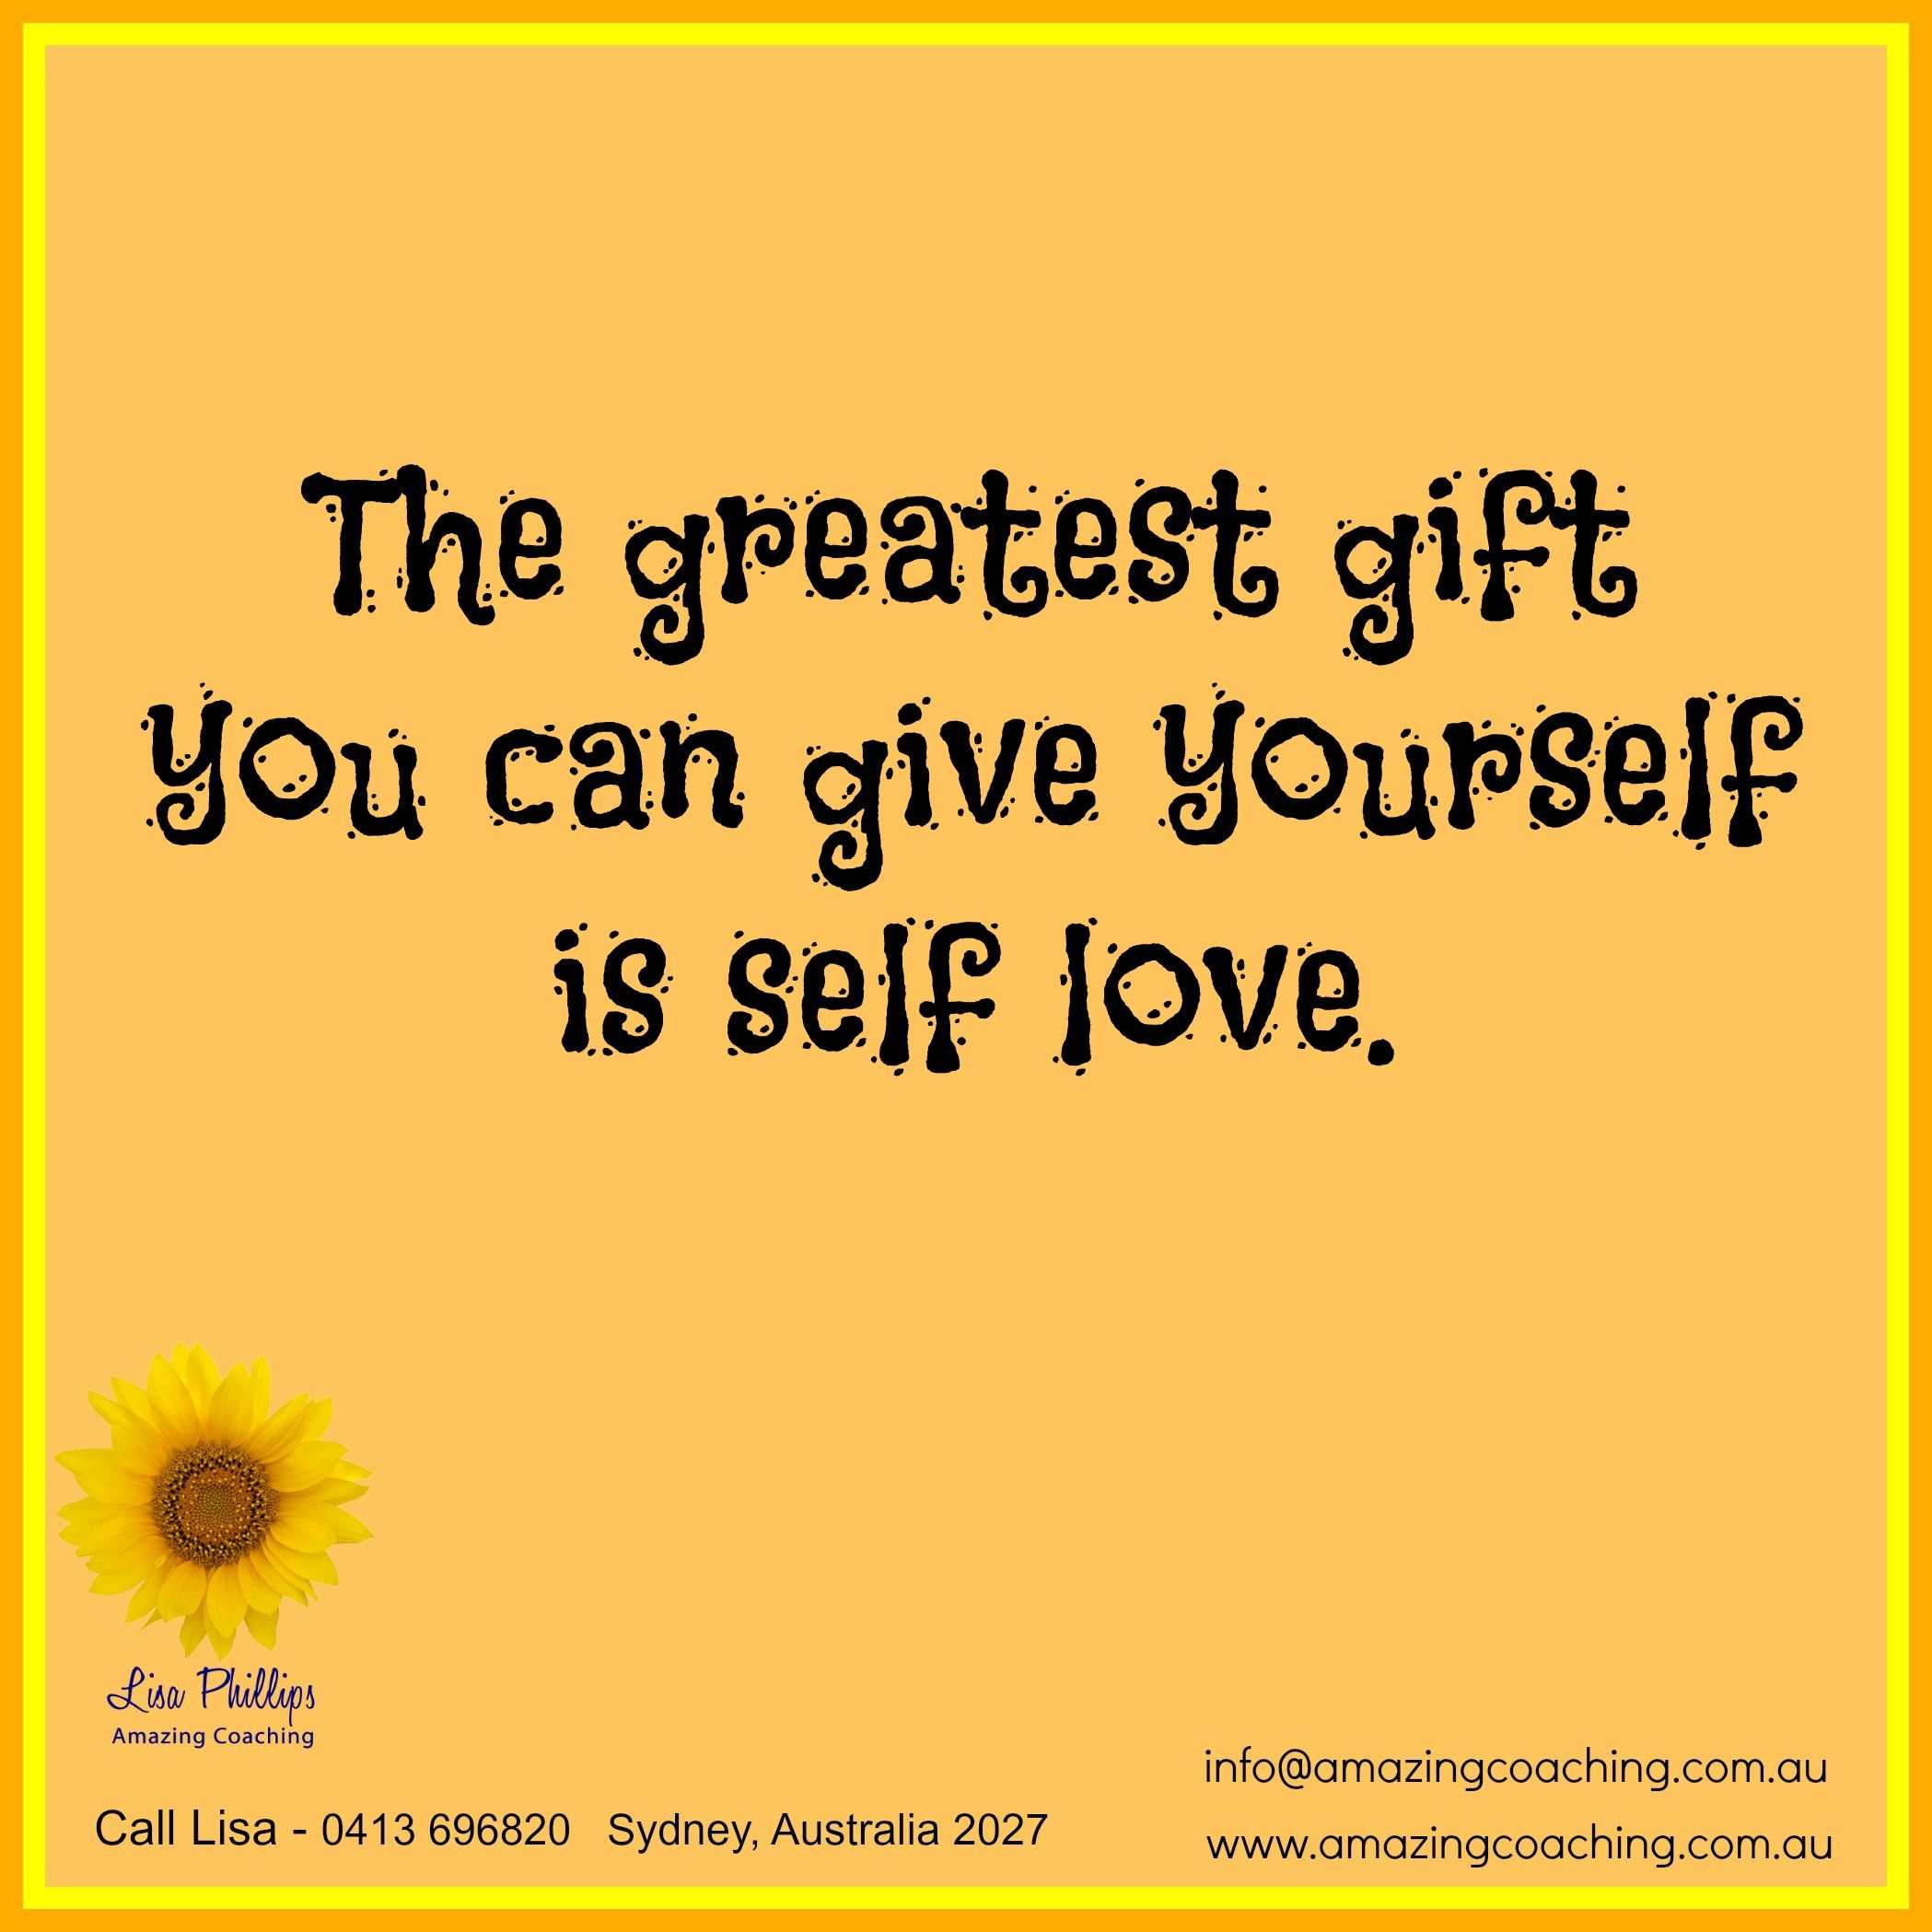 The greatest gift you can give yourself is self-love.  Confidence